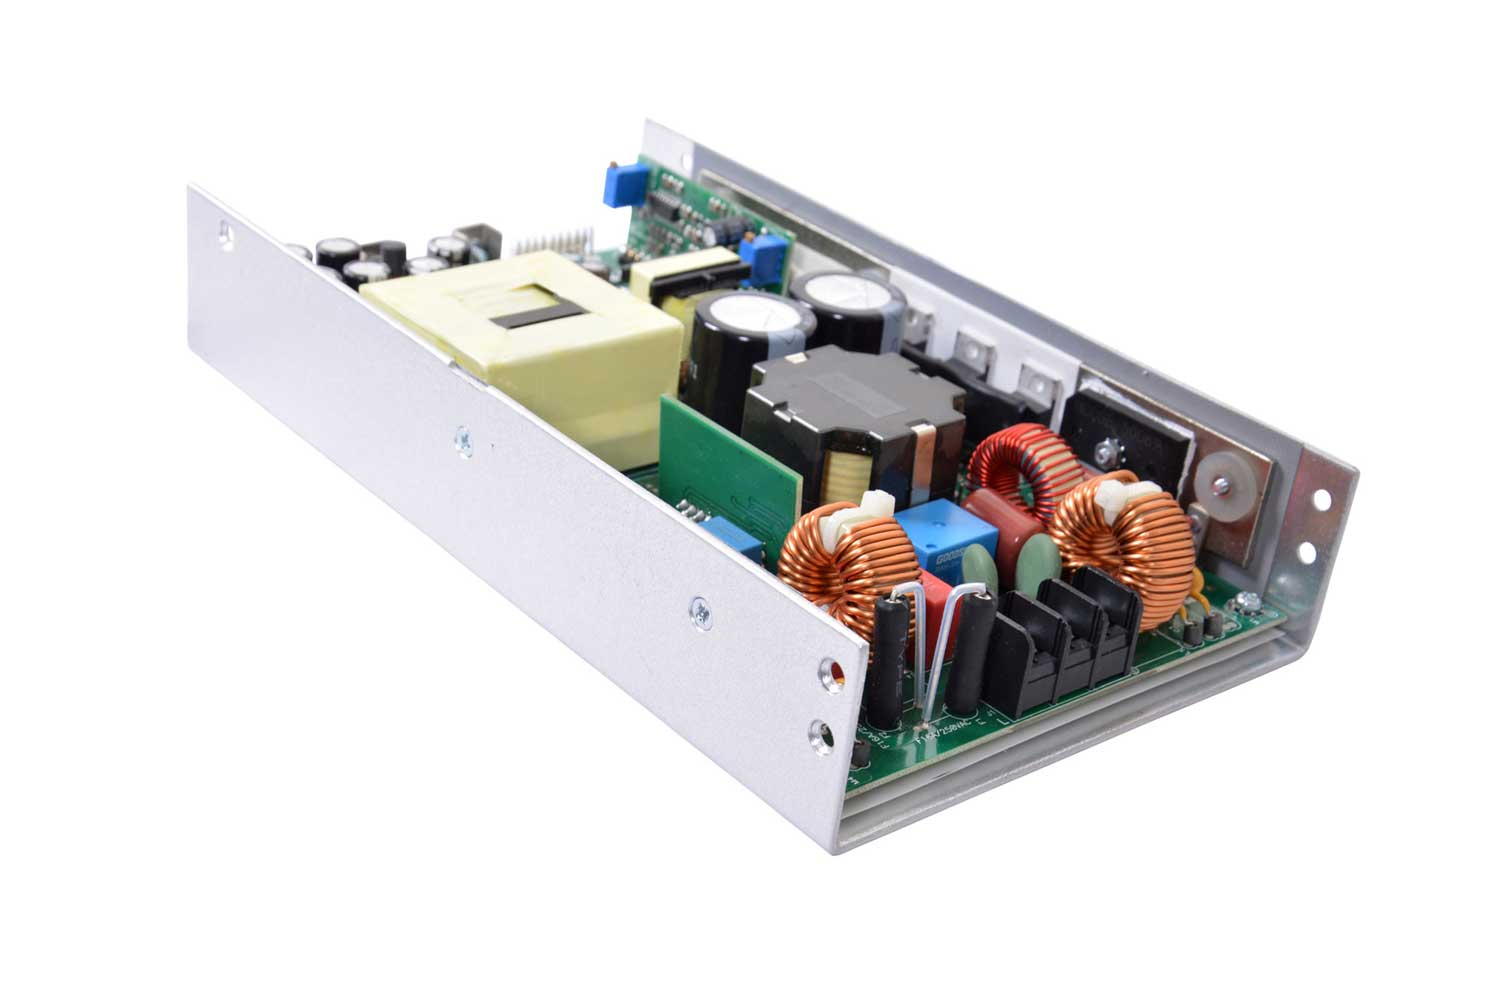 VPS 600 - Power Suply for POE applications